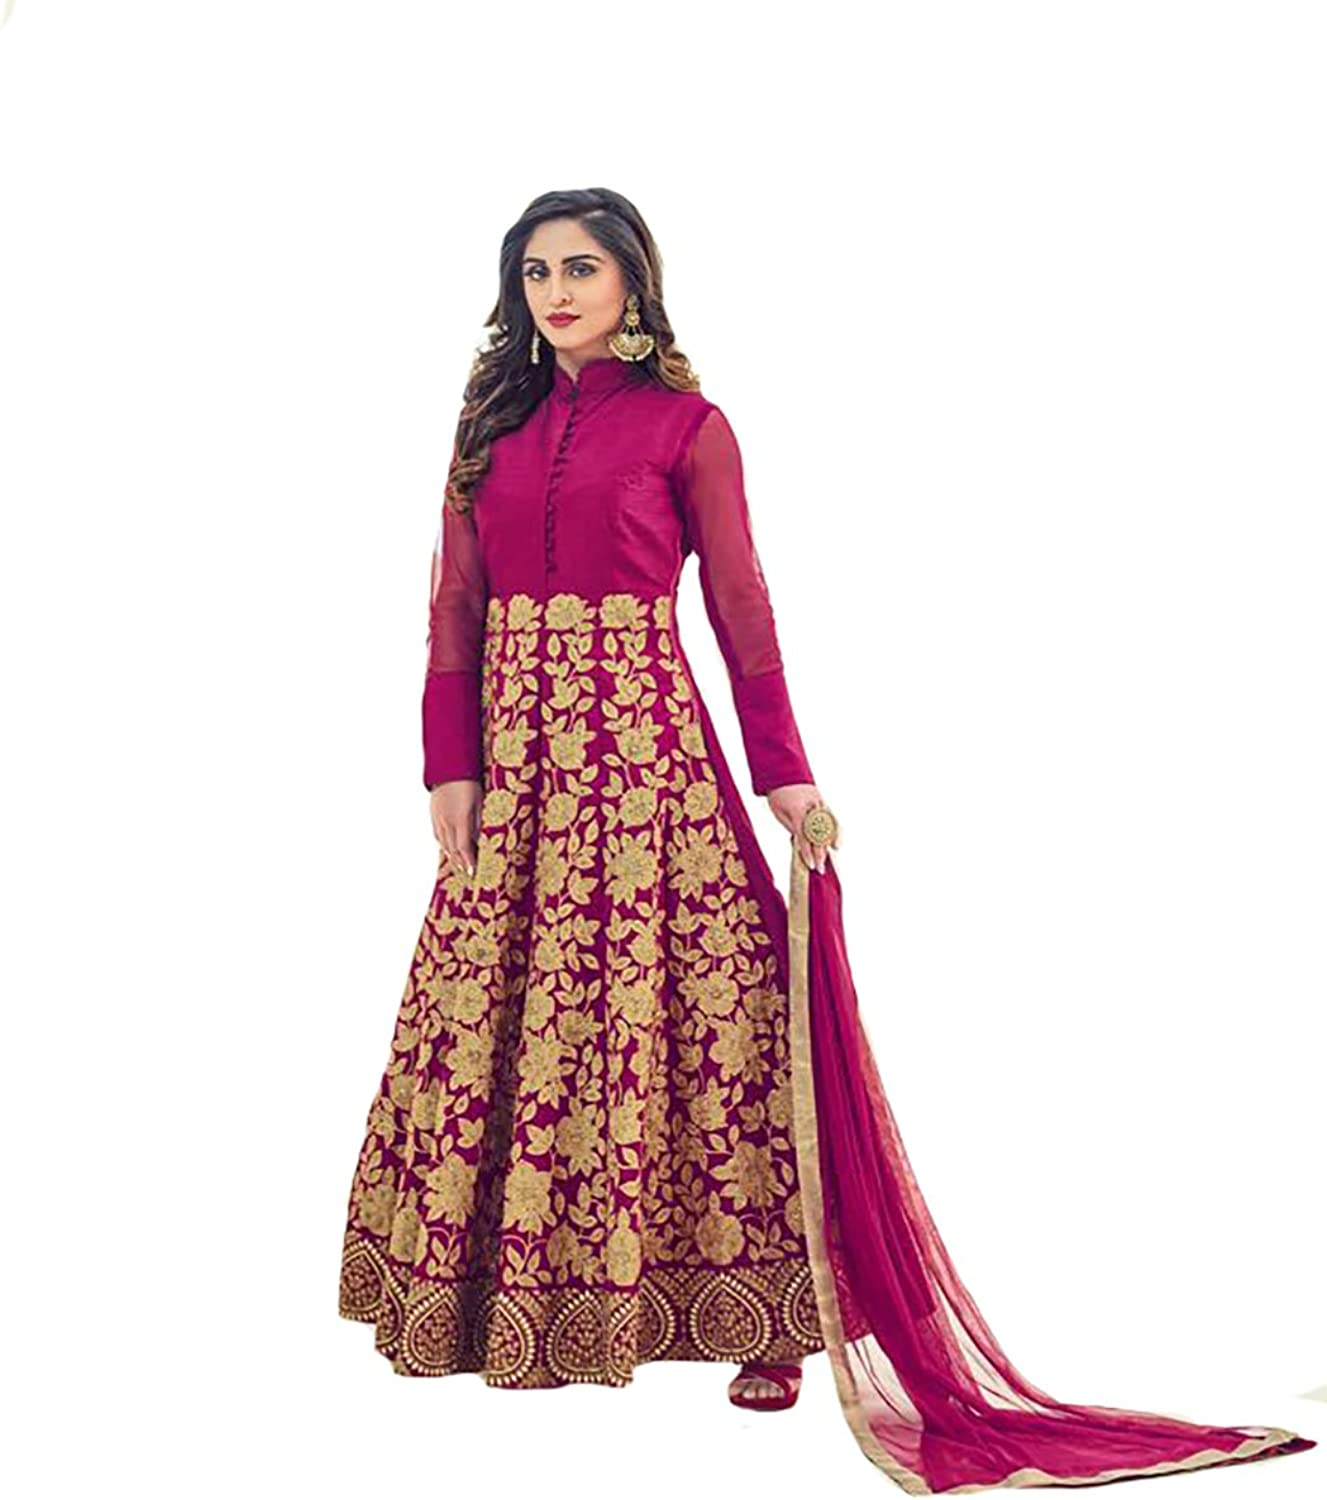 New Launched Collection Anarkali Salwar Kameez suit Ceremony Muslim Women 8718